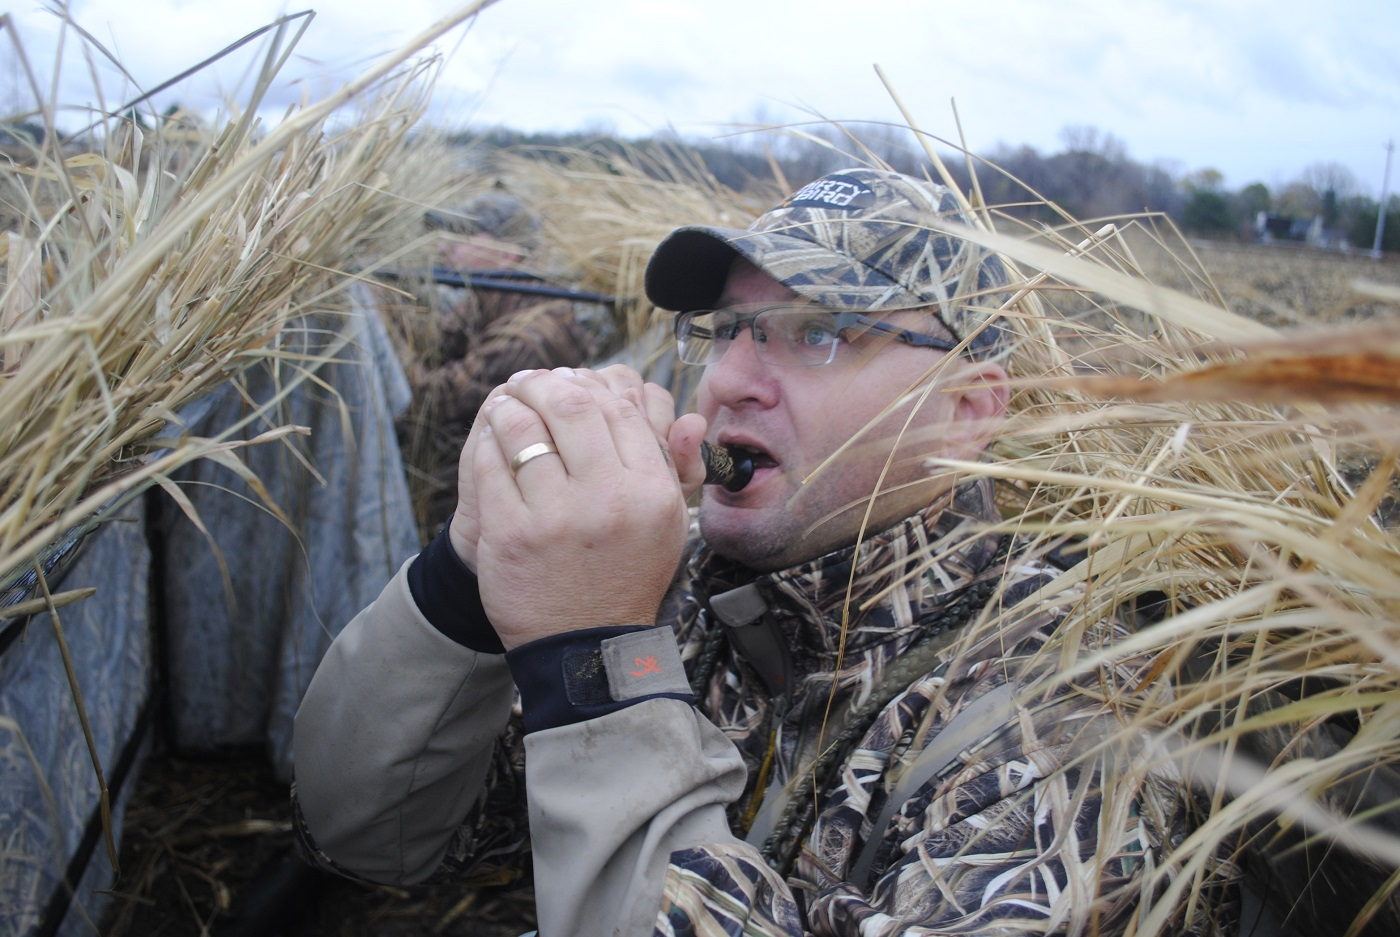 xa and avian angie blind gear for field decoys supplies waterfowl marsh inside canadian frame blinds